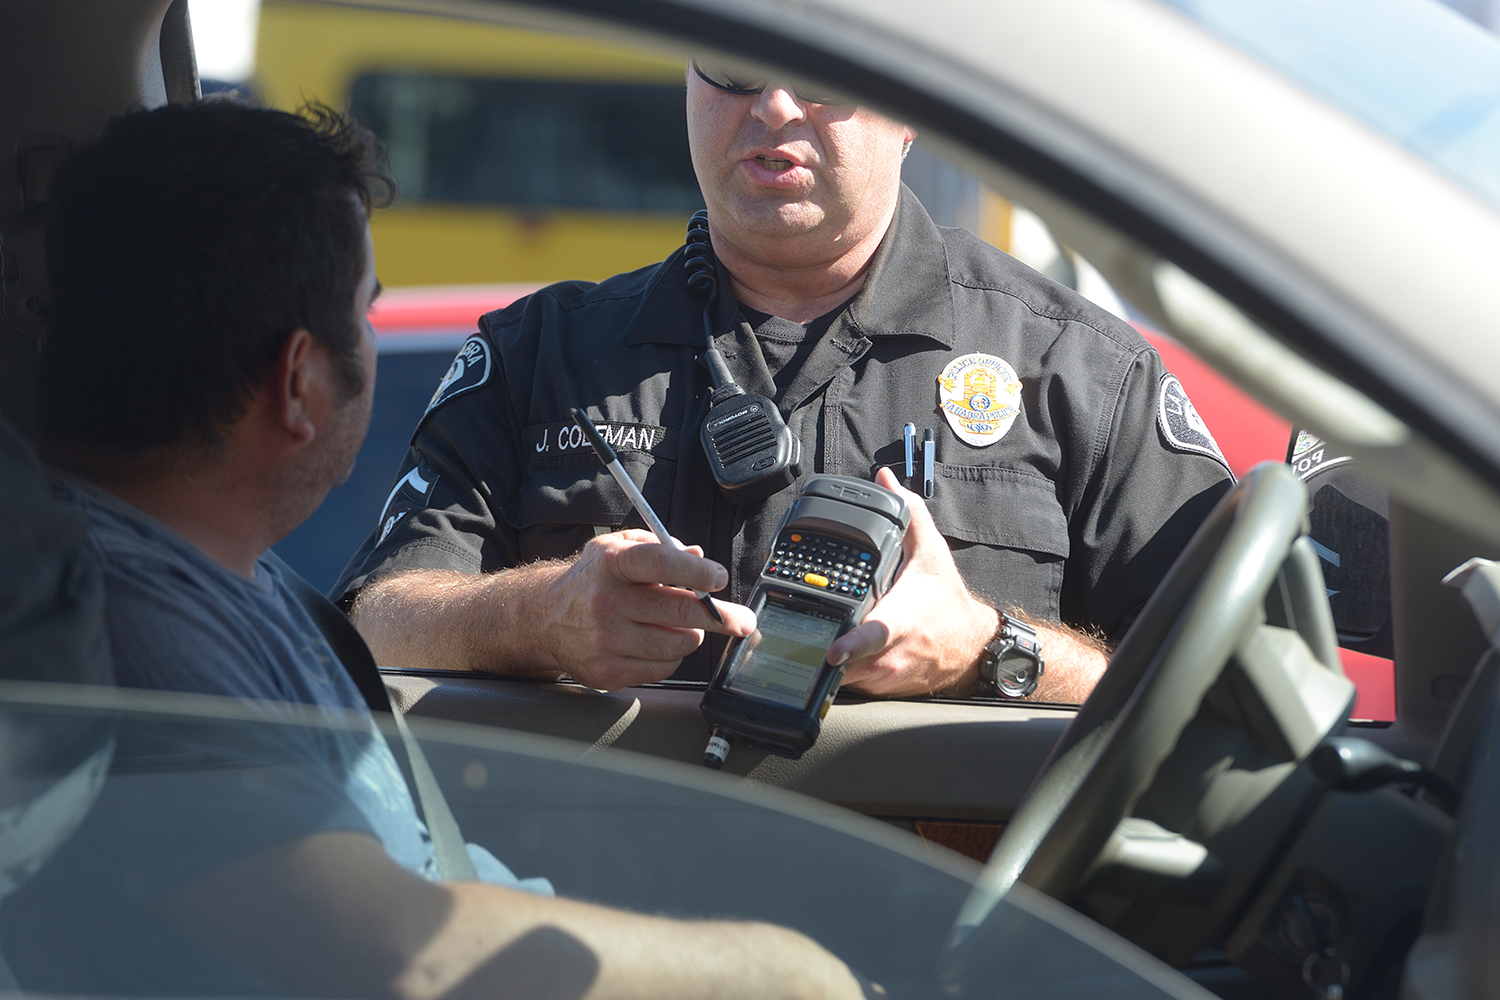 How to Get Out of Speeding Tickets: 41% of Drivers Say Ask for a